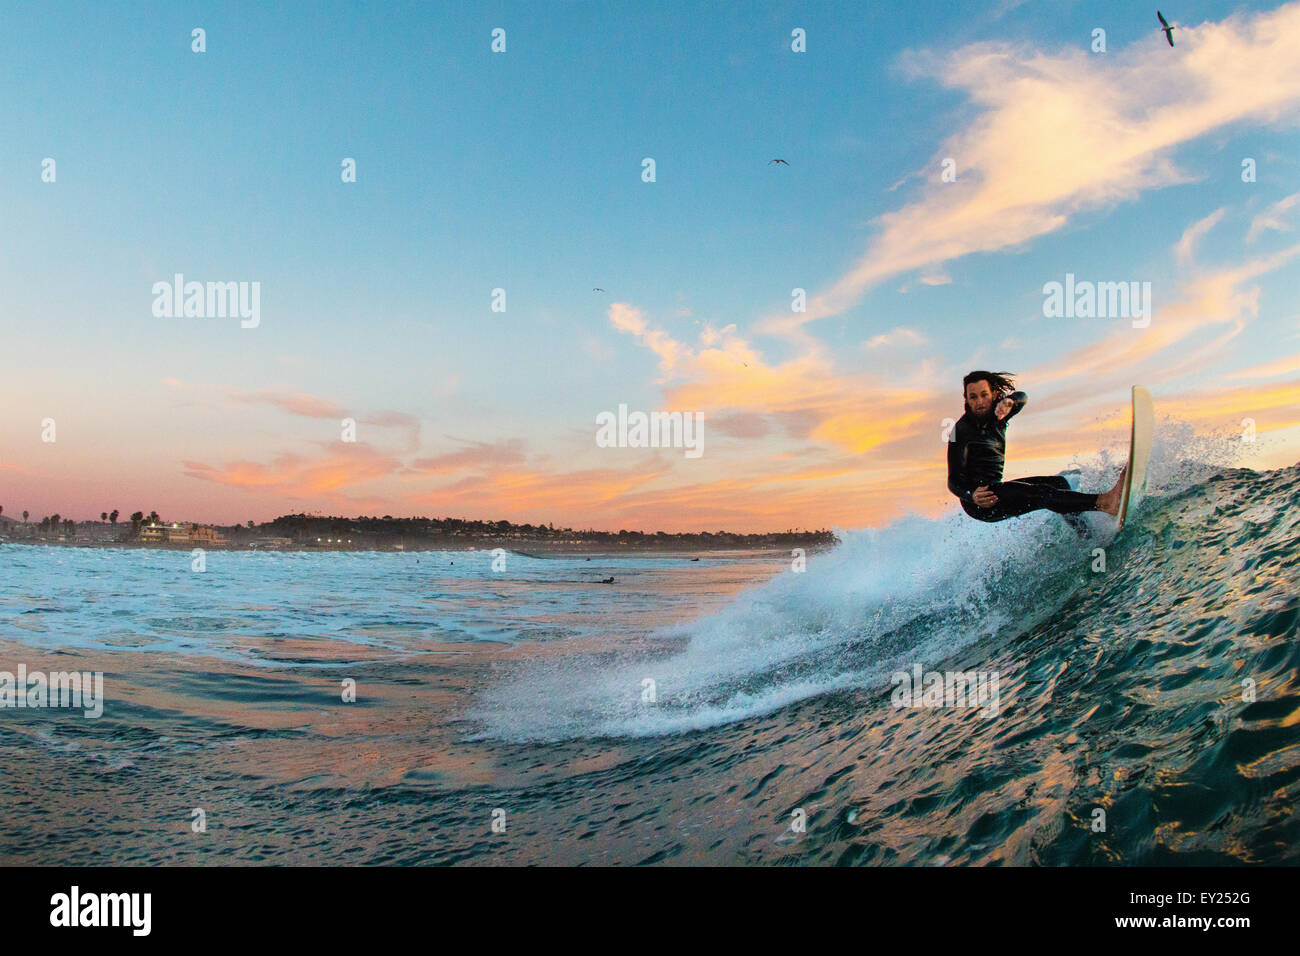 Jeune homme surf surfer une vague, Cardiff-by-the-Sea, California, USA Photo Stock